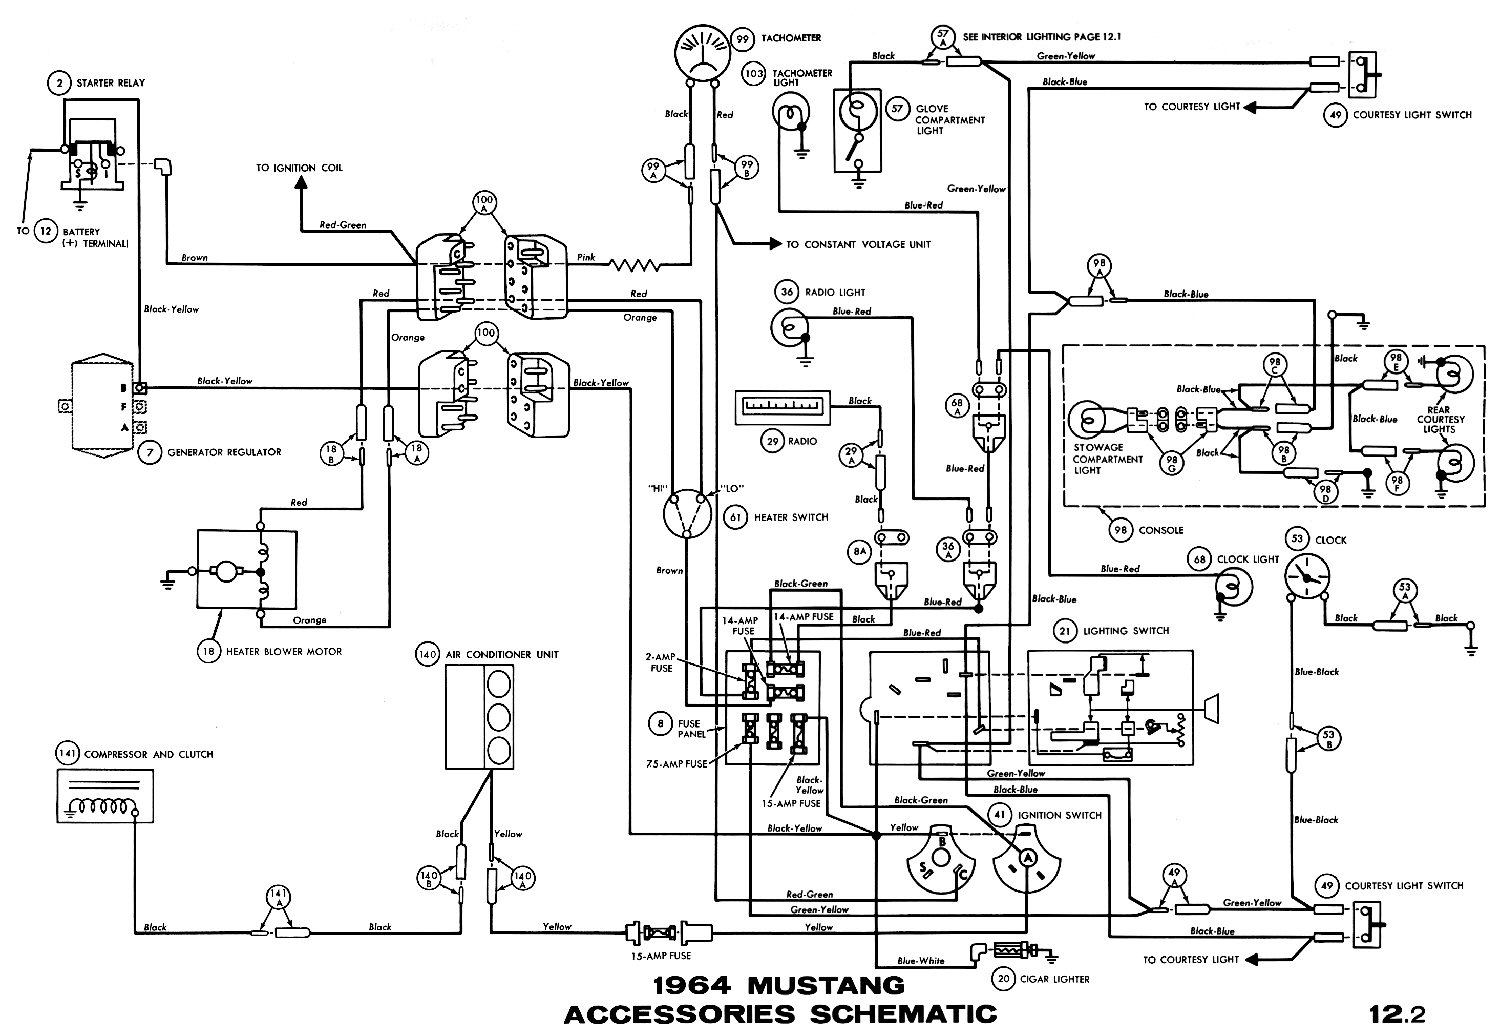 1964m 1964 ford mustang wiring diagram wiring diagram data